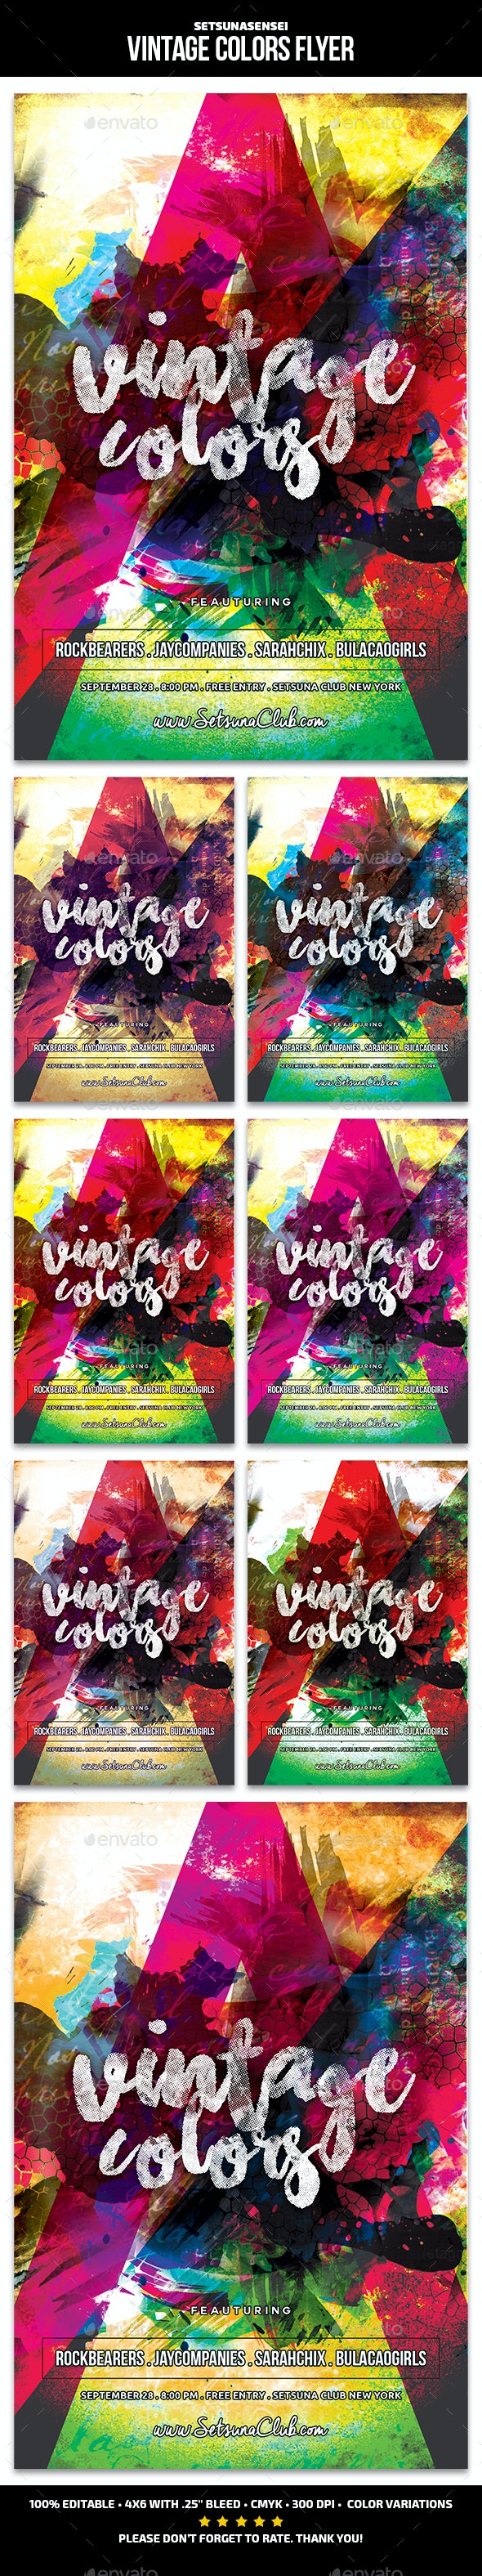 Vintage Colors Flyer - Clubs & Parties Events